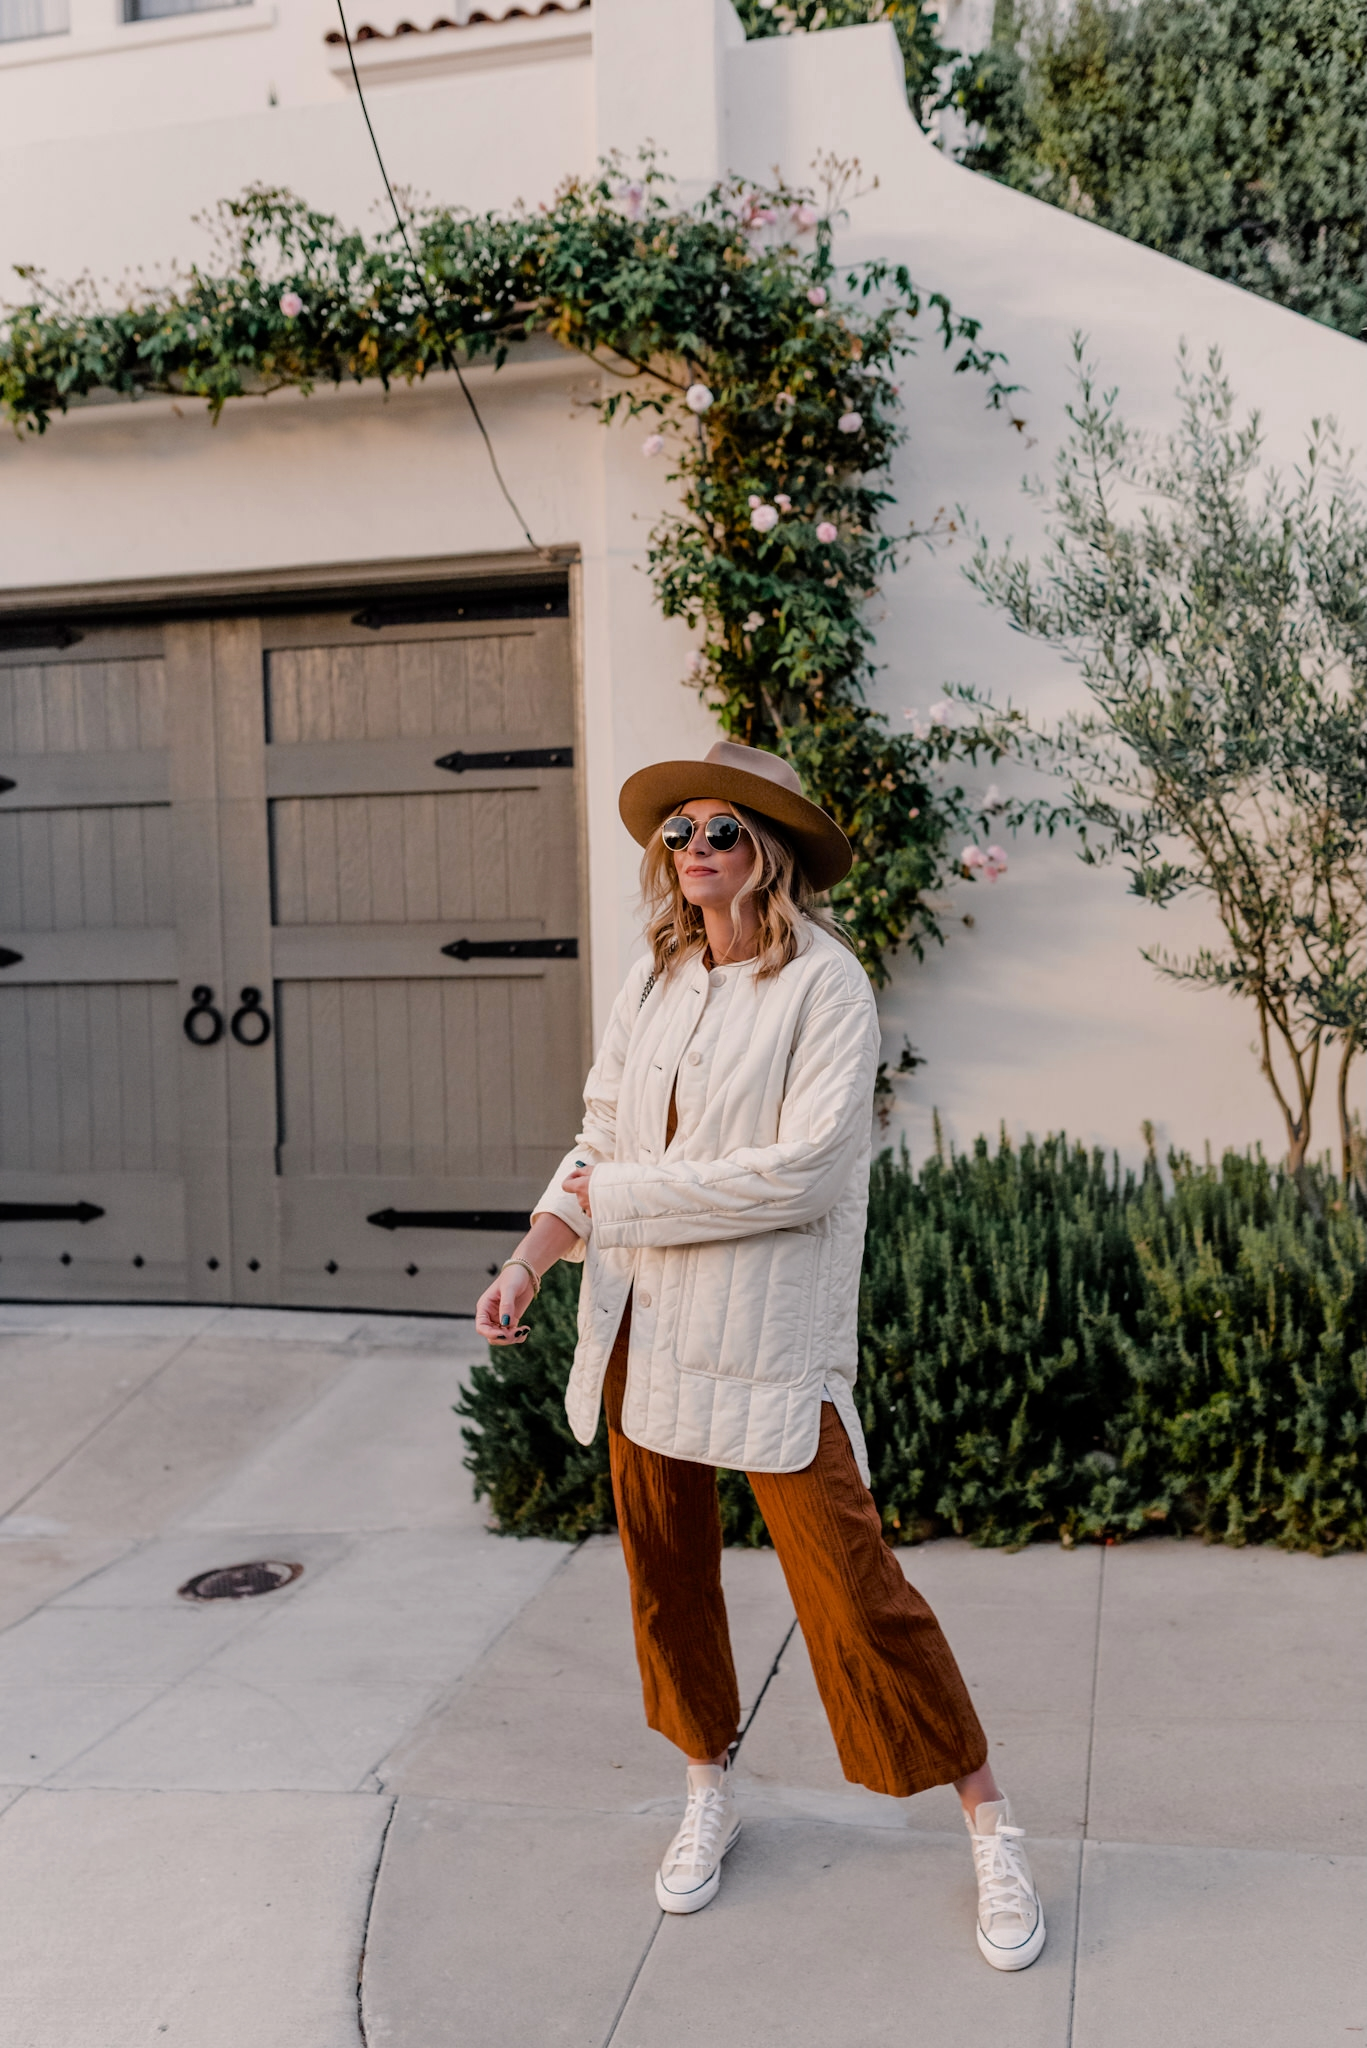 Top Looks of 2020 |Top Looks by San Diego fashion blog, Navy Grace: image of a woman wearing a tan quilted jacket, brown wide brim felt hat, tan Converse sneakers, and wide leg pants.